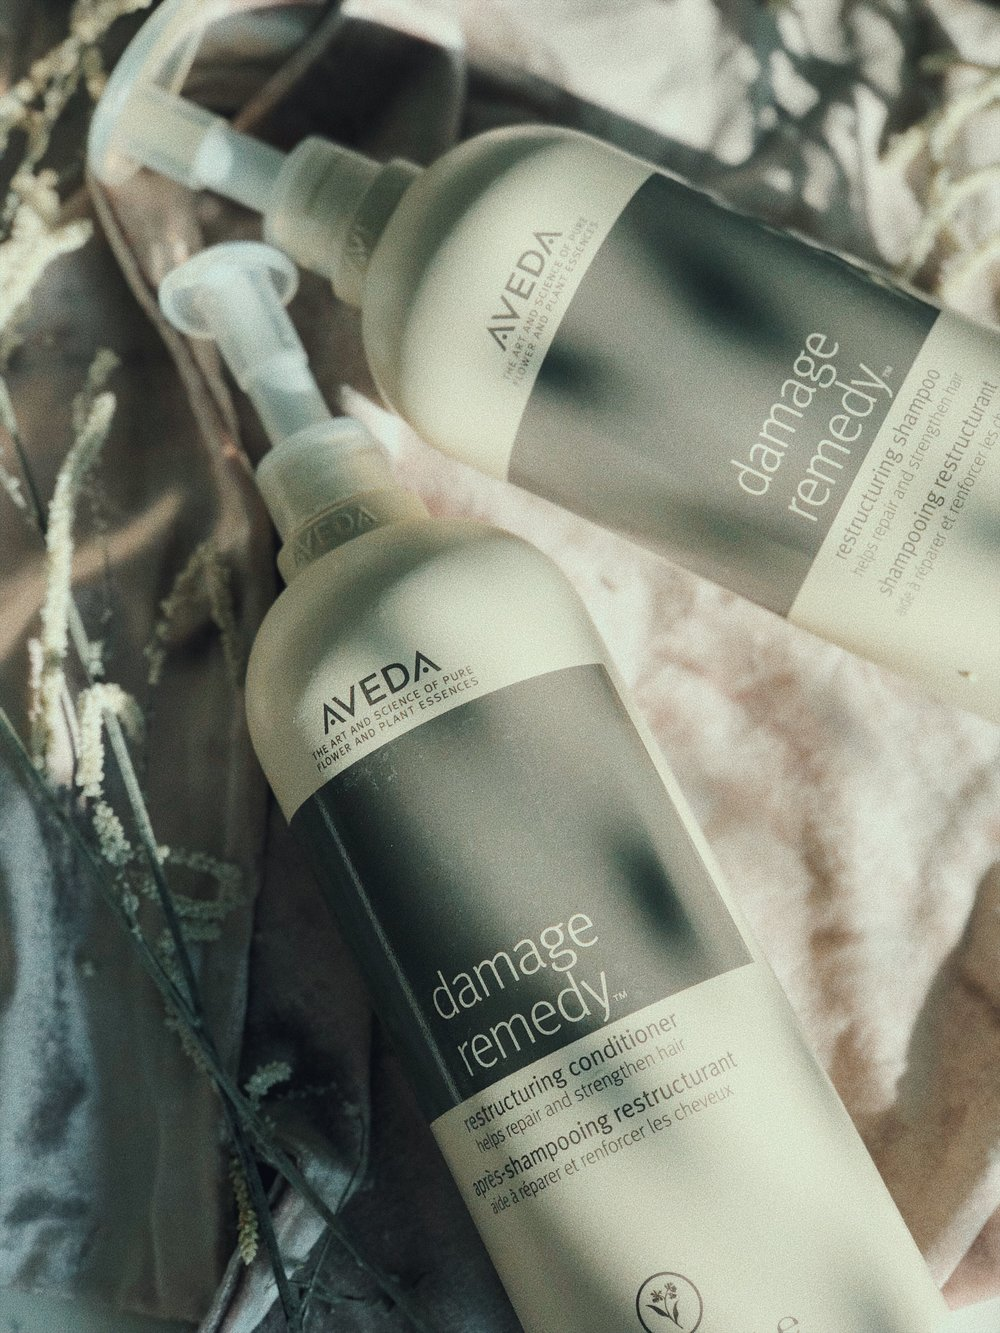 MY HOLY GRAIL! THE ONLY SHAMPOO AND CONDITIONER IS USE. AFTER BLEACHING MY HAIR OVER 10 YEARS IT WAS DRY AND DAMAGED AF AND THIS IS WHAT IS SLOWLY BUT SURELY BRINGING IT BACK TO LIFE. I BEEN USING THIS FOR ALMOST 8 MONTHS NOW AND MY HAIR GOT HIS THICKNESS BACK. IF YOU WANNA SPLURGE, SPLURGE ON THE  AVEDA DAMAGE REMEDY LINE . - J